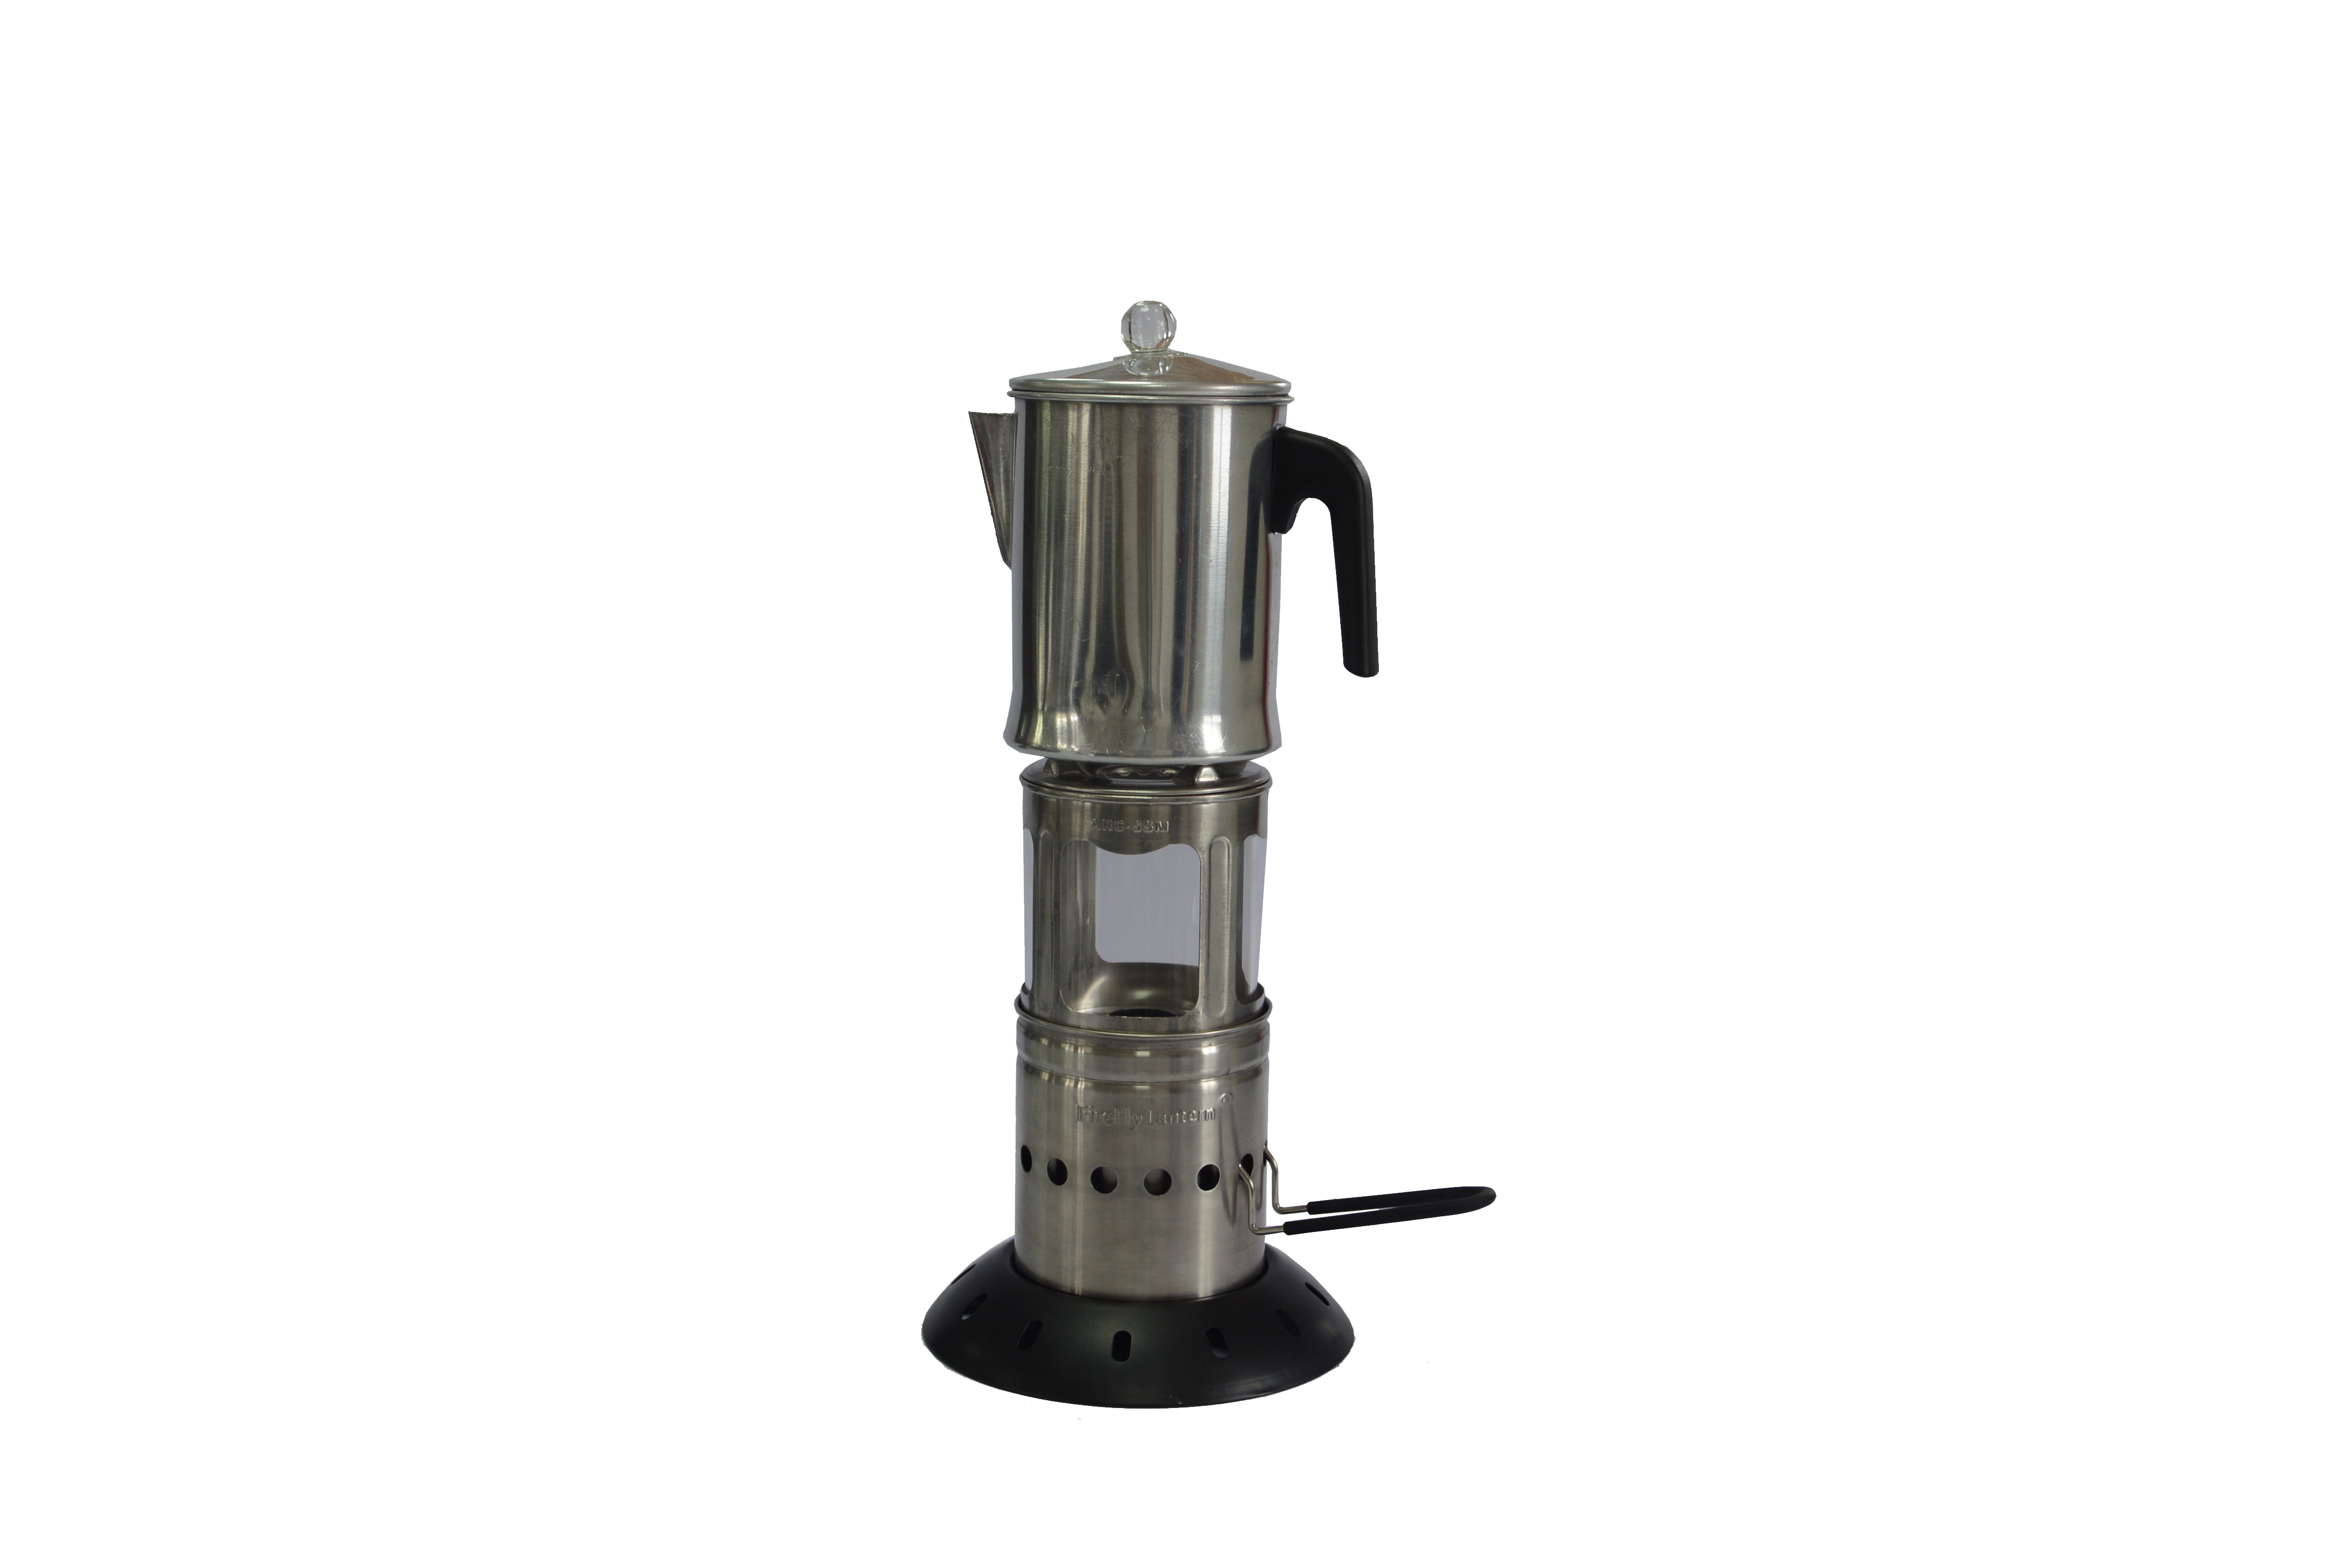 The Firefly Lantern with coffee pot